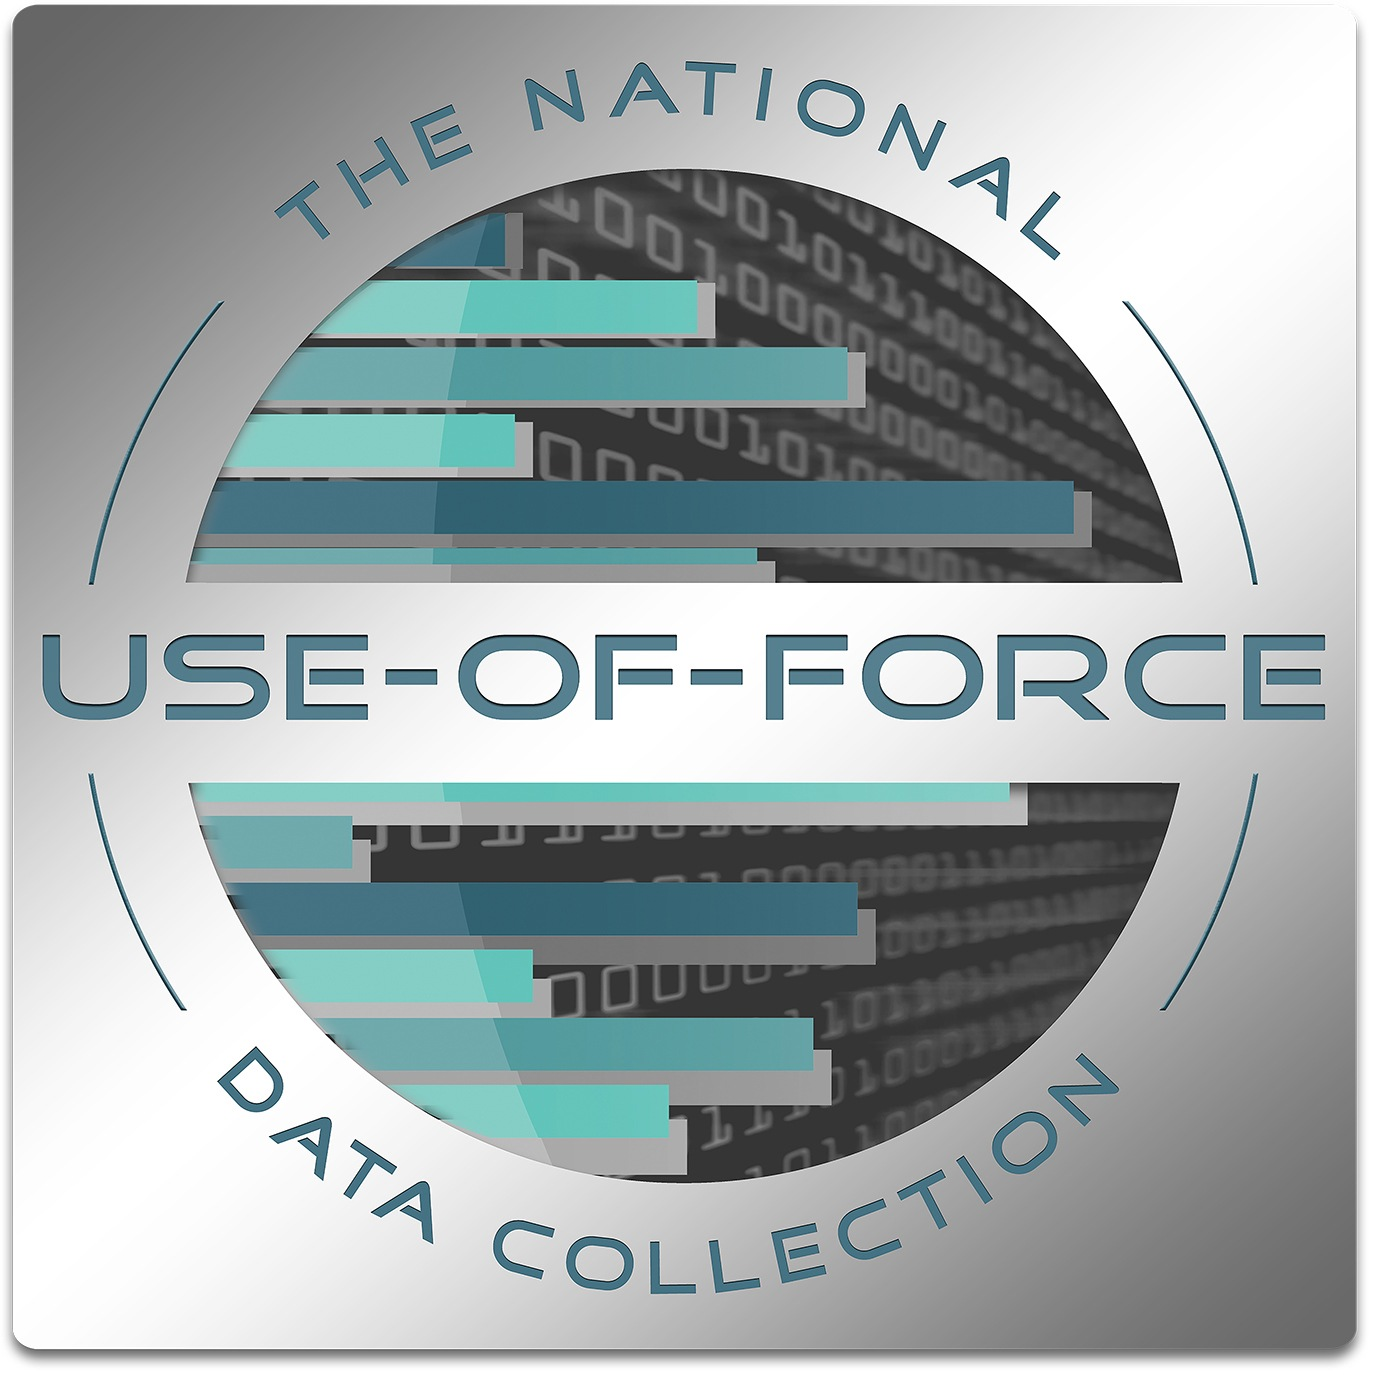 Logo for the National Use-of-Force Data Collection